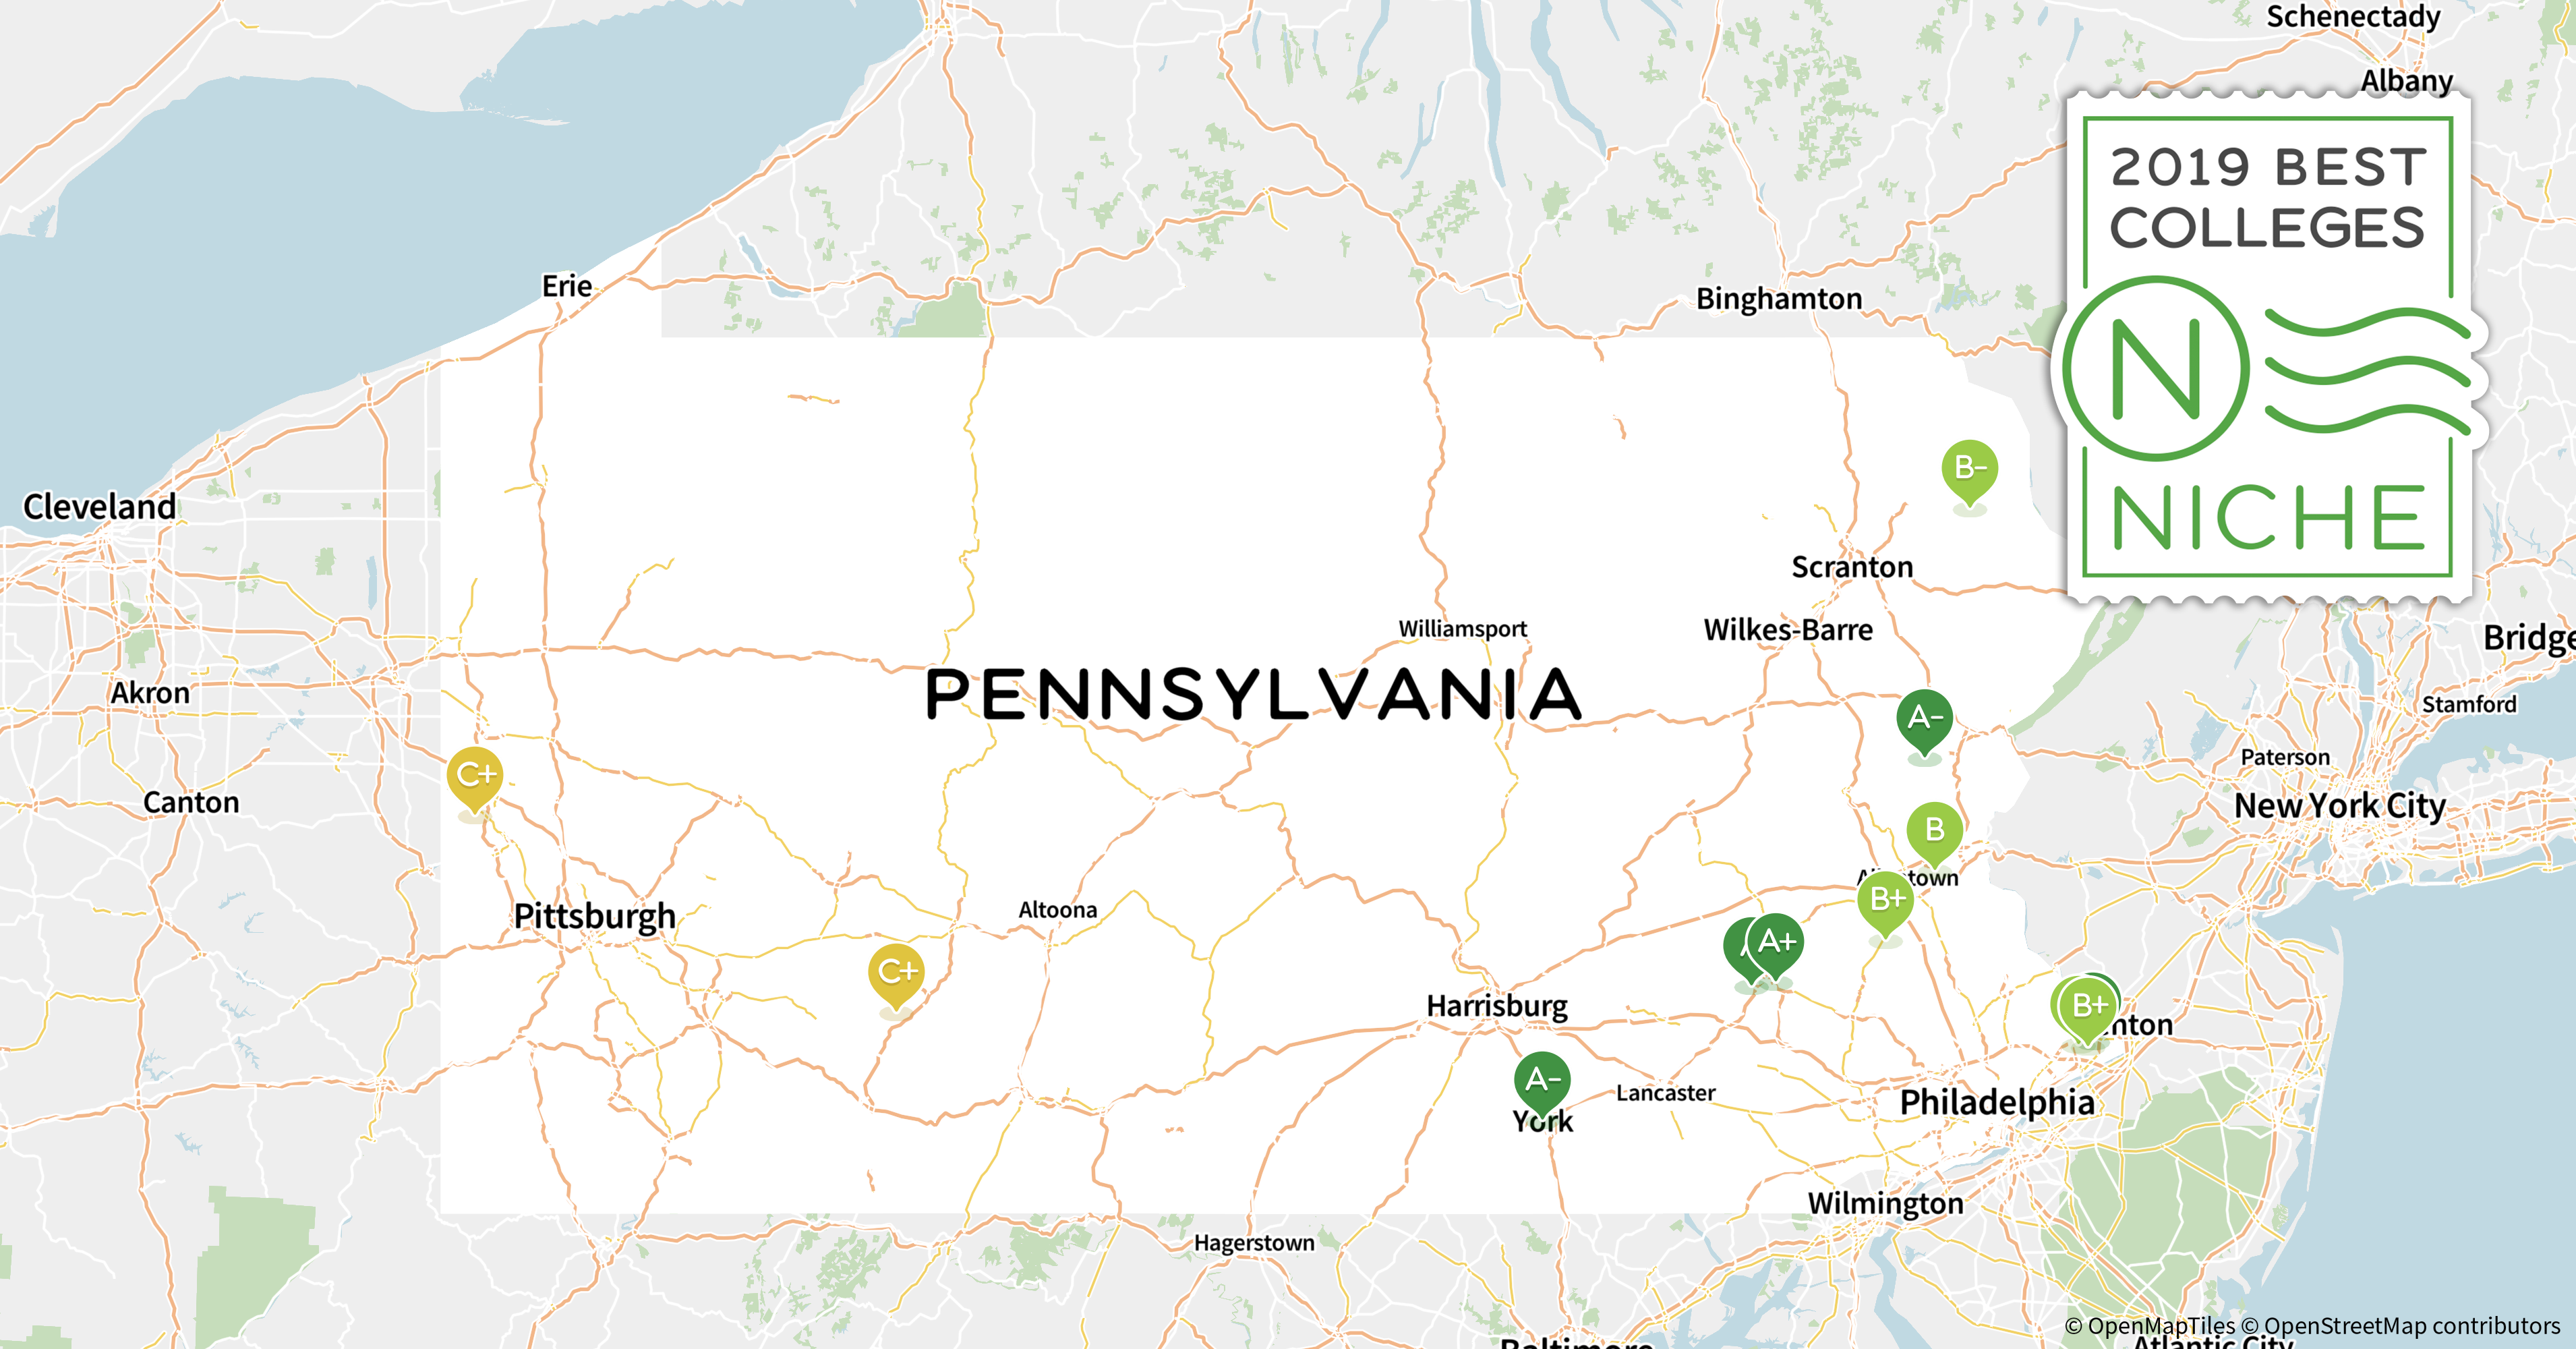 2019 Top Party Schools In Pennsylvania Niche